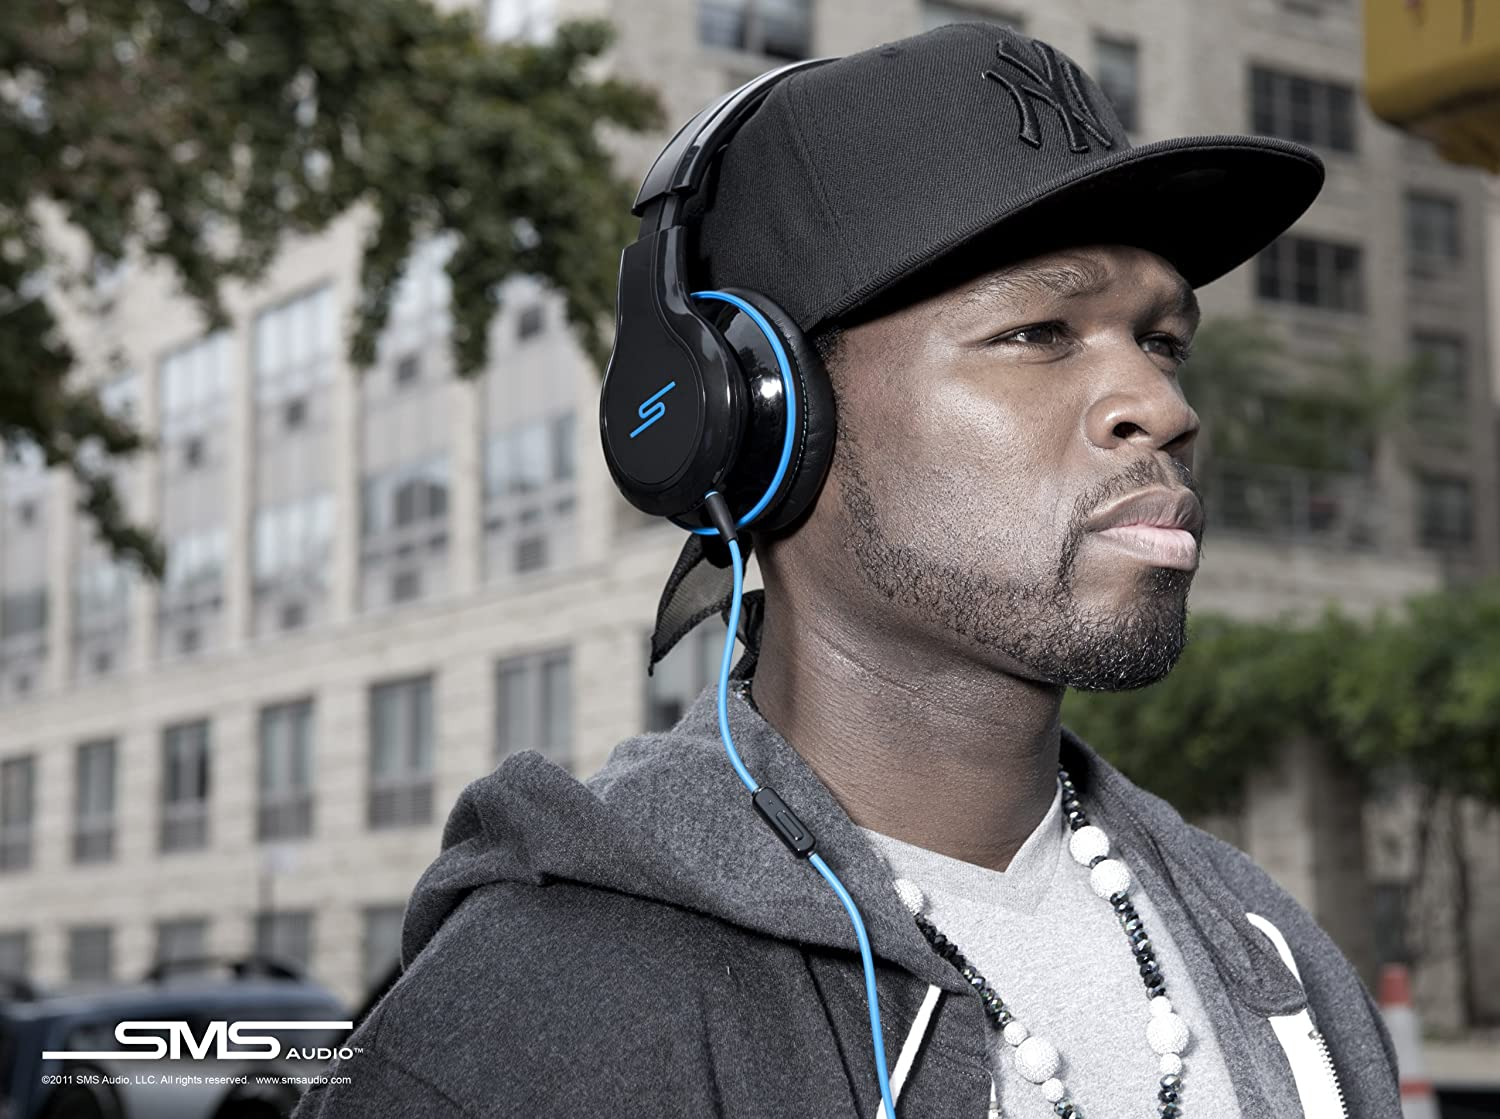 Amazon.com: SMS Audio STREET By 50 Cent Over-Ear Wired Headphones ...